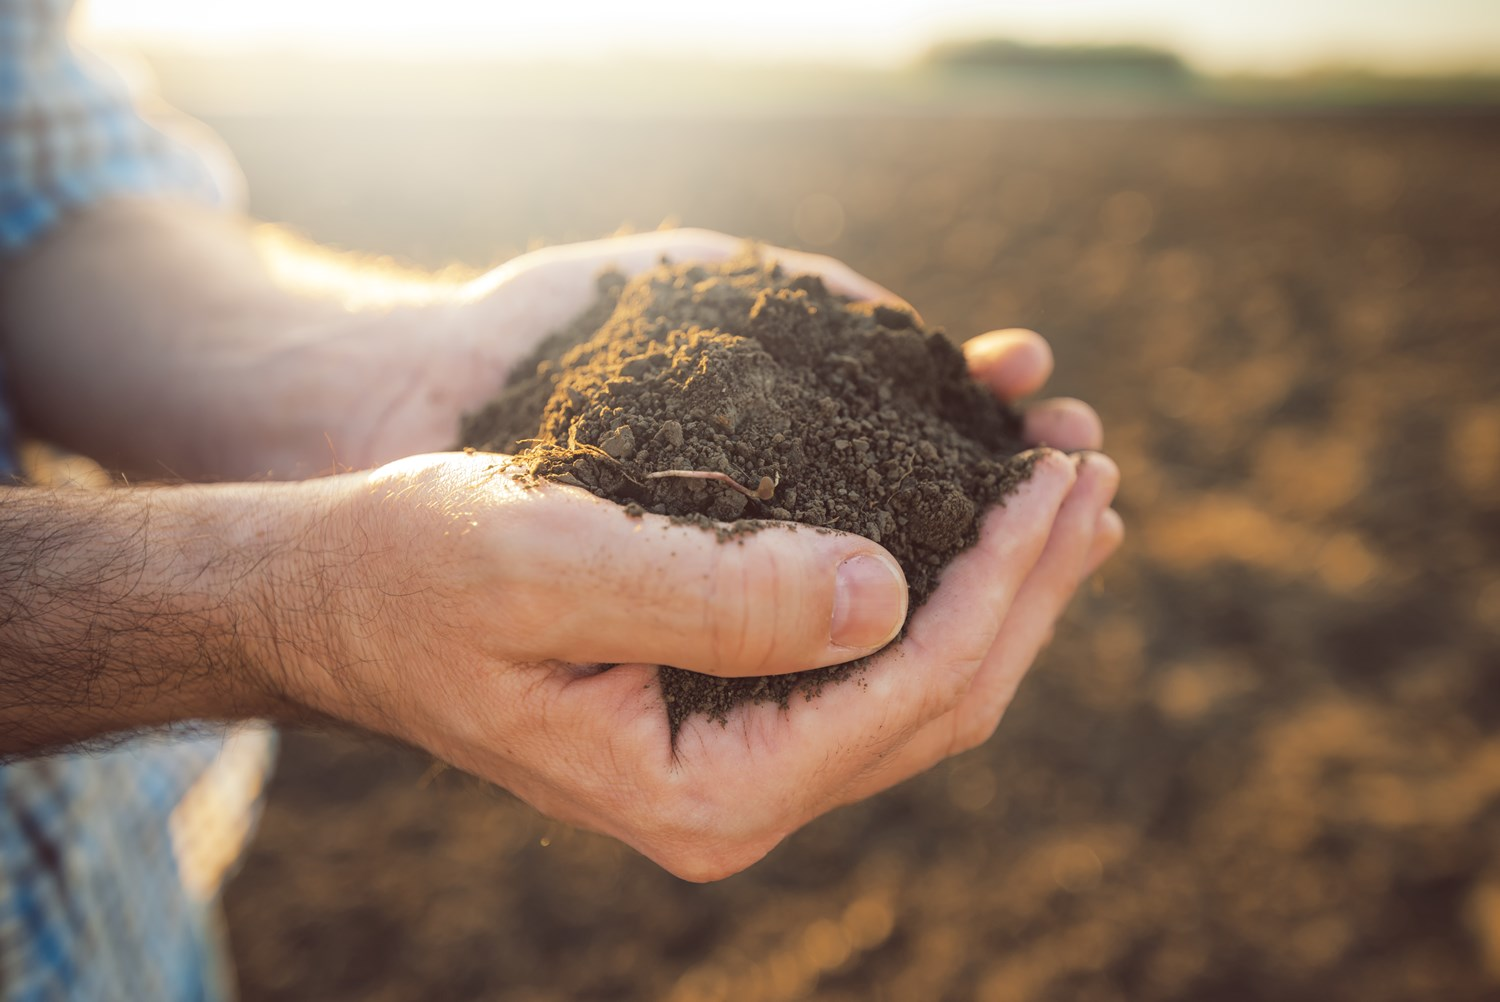 Sustainable agriculture, soil fertility and transparency in our food chain